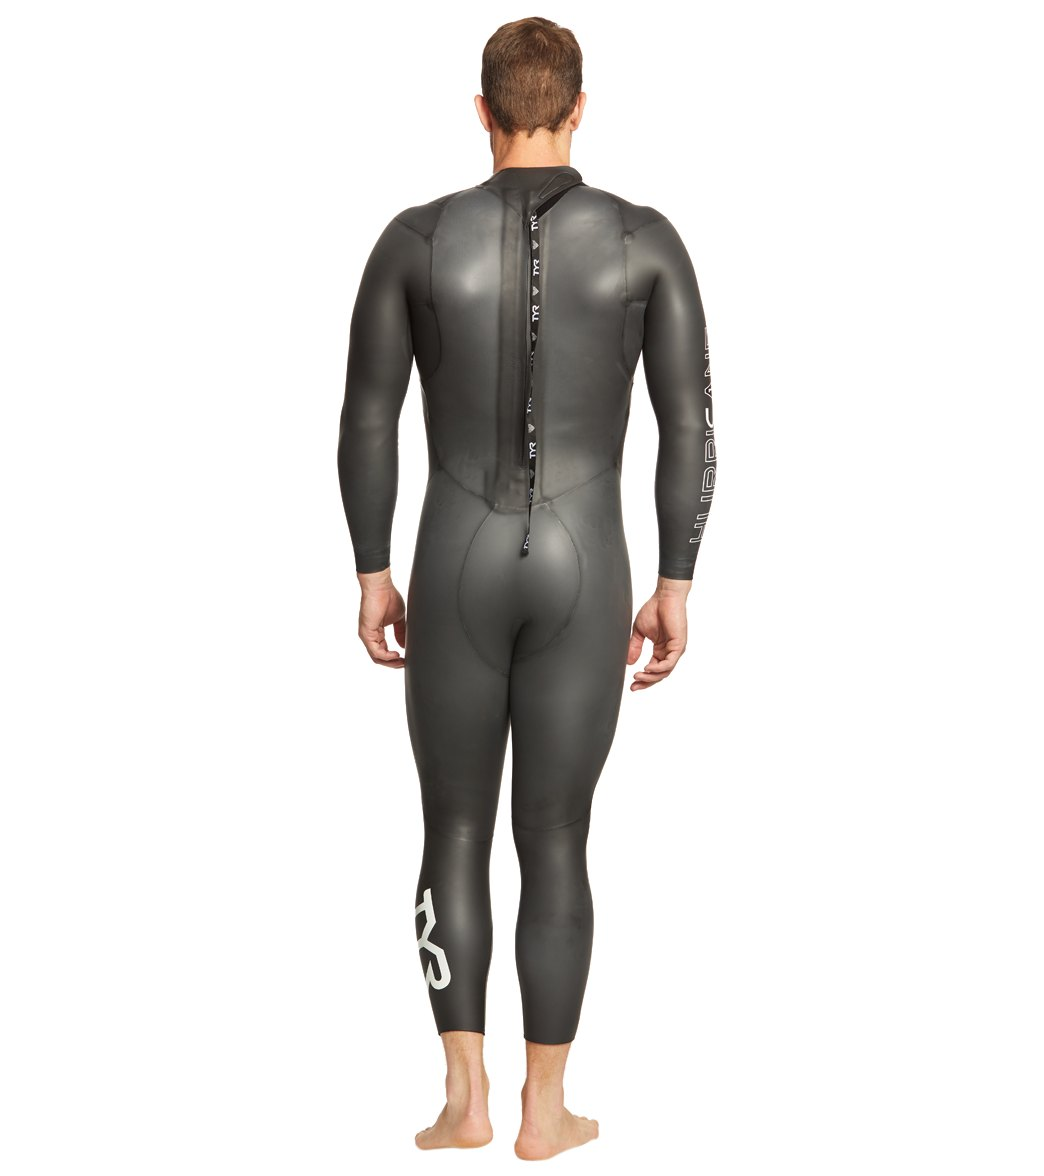 dea992507d TYR Men s Hurricane Cat 1 Fullsleeve Triathlon Wetsuit at SwimOutlet ...